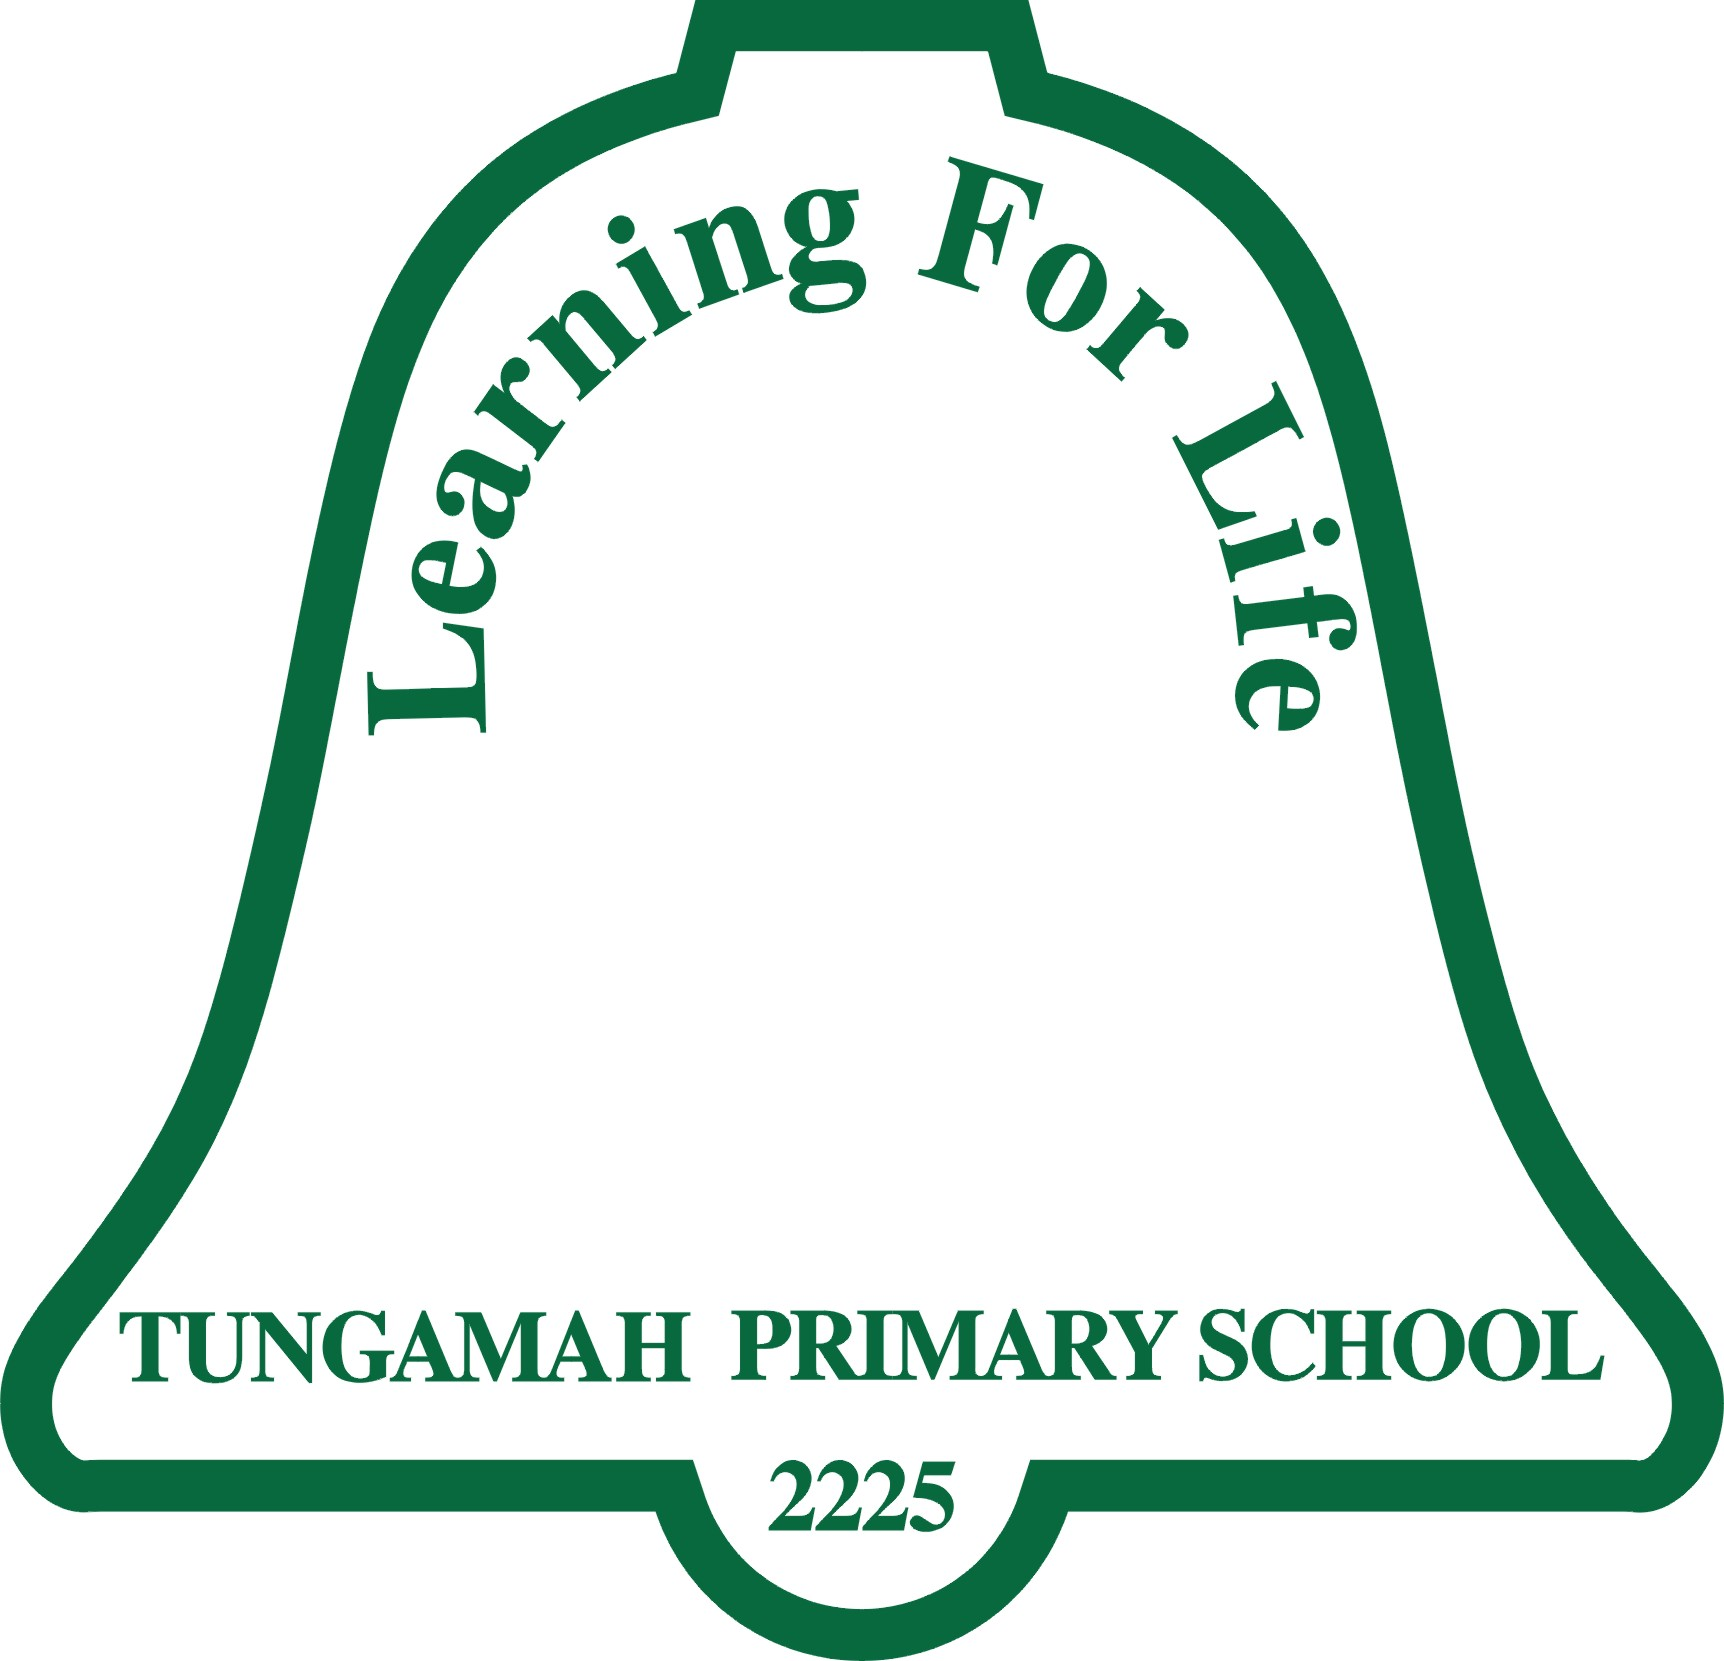 Tungamah Primary School